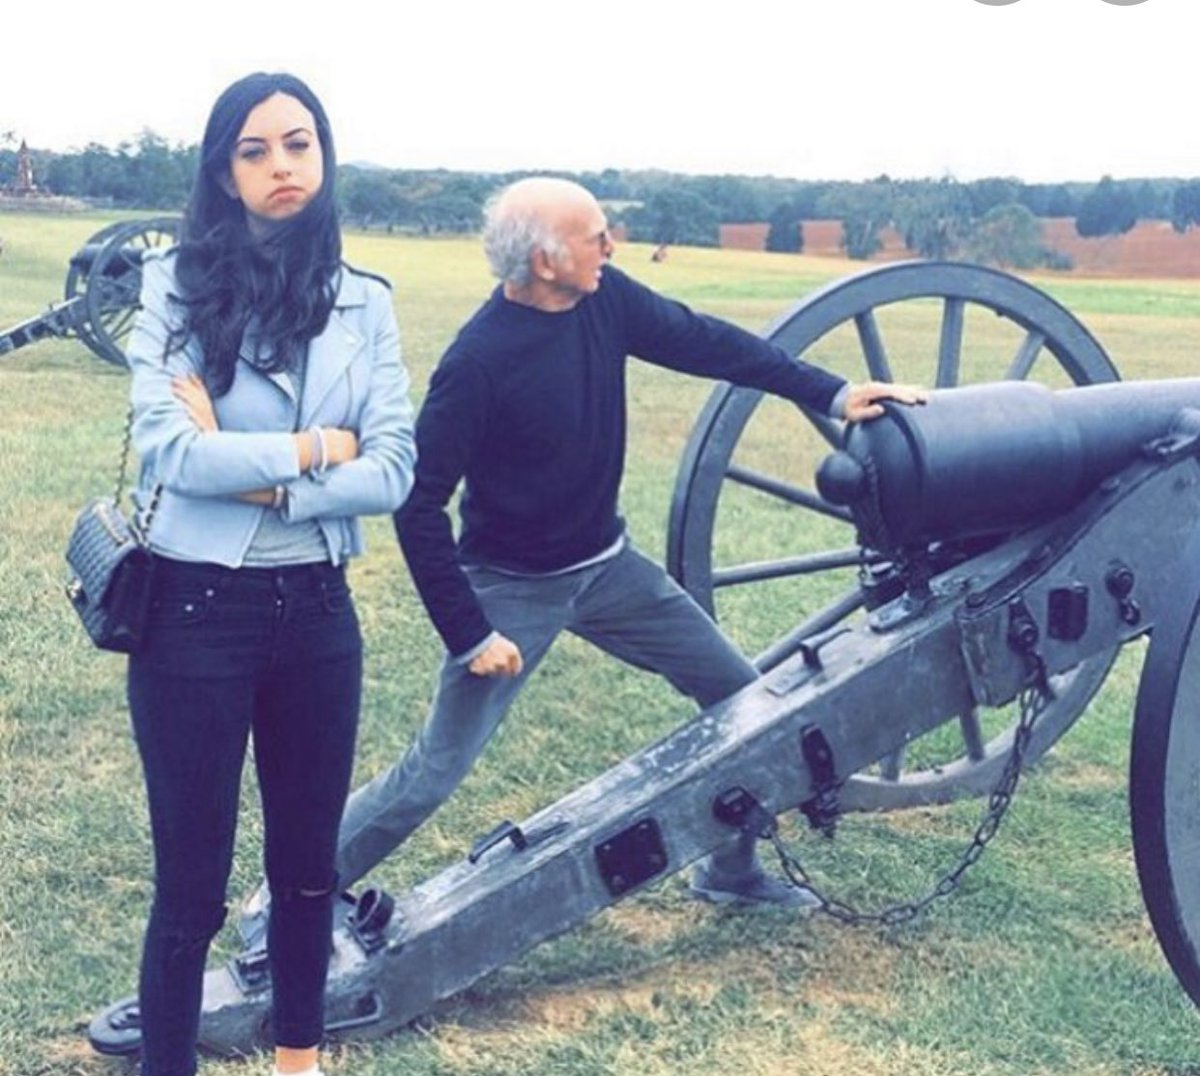 @MonicaBarry545 @MarkHertling It was a long cold day when my parents took me to see Gettysburg as a child. Like Larry David's daughter, I was ready to leave before they were. But I was grateful when I matured and came to better appreciate just what an awful battle it must have been like to have fought in it. https://t.co/3XLC2zh12W